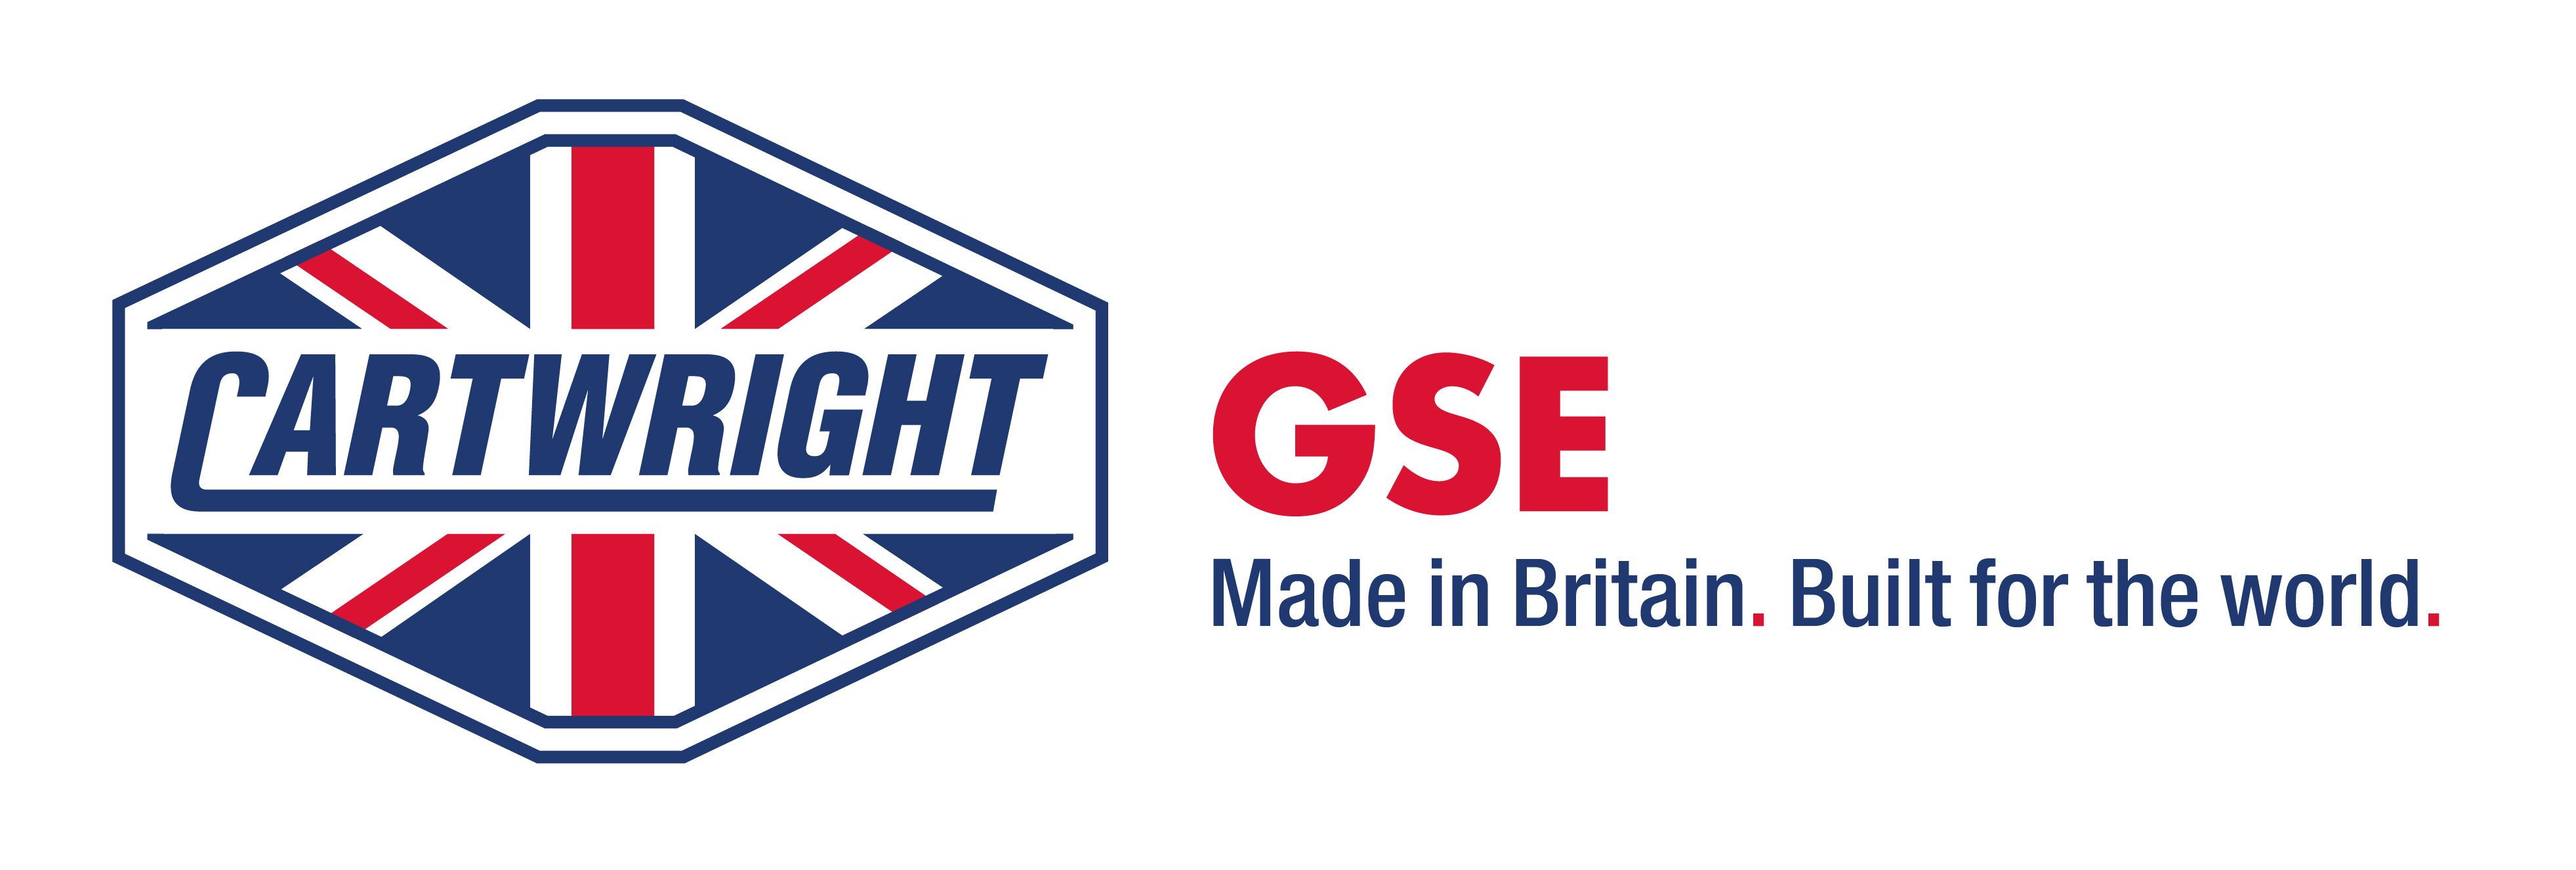 Cartwright GSE